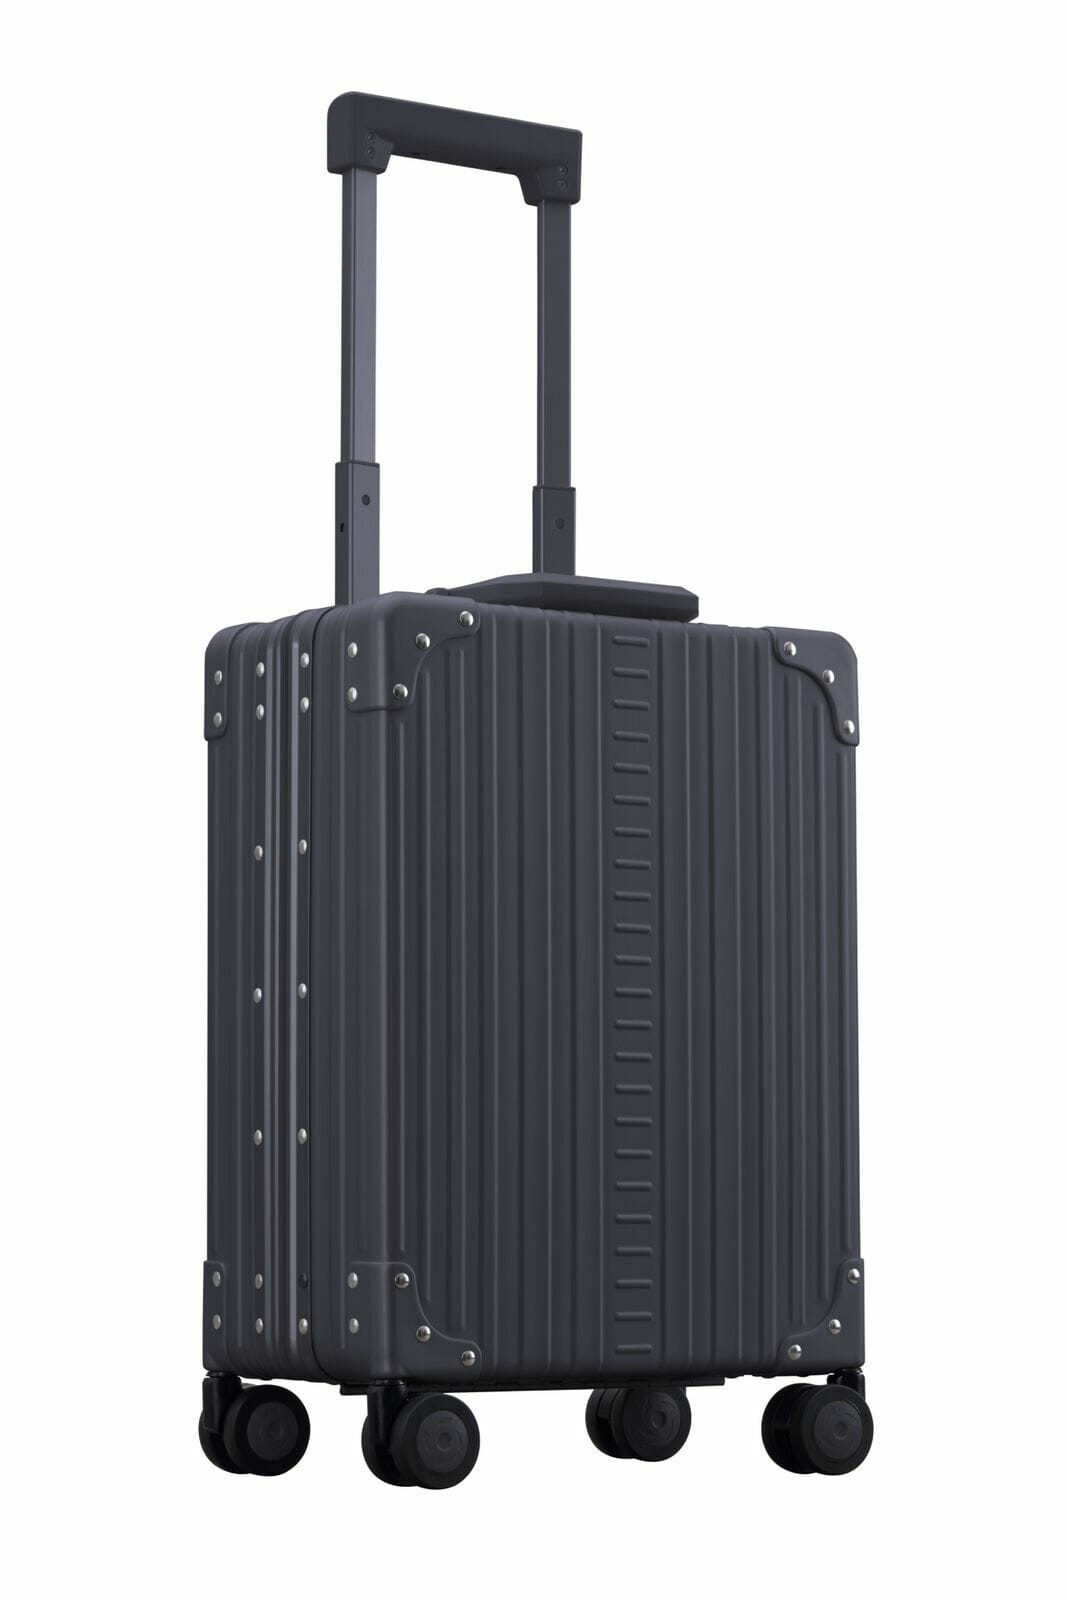 Black 19 inch international carry on